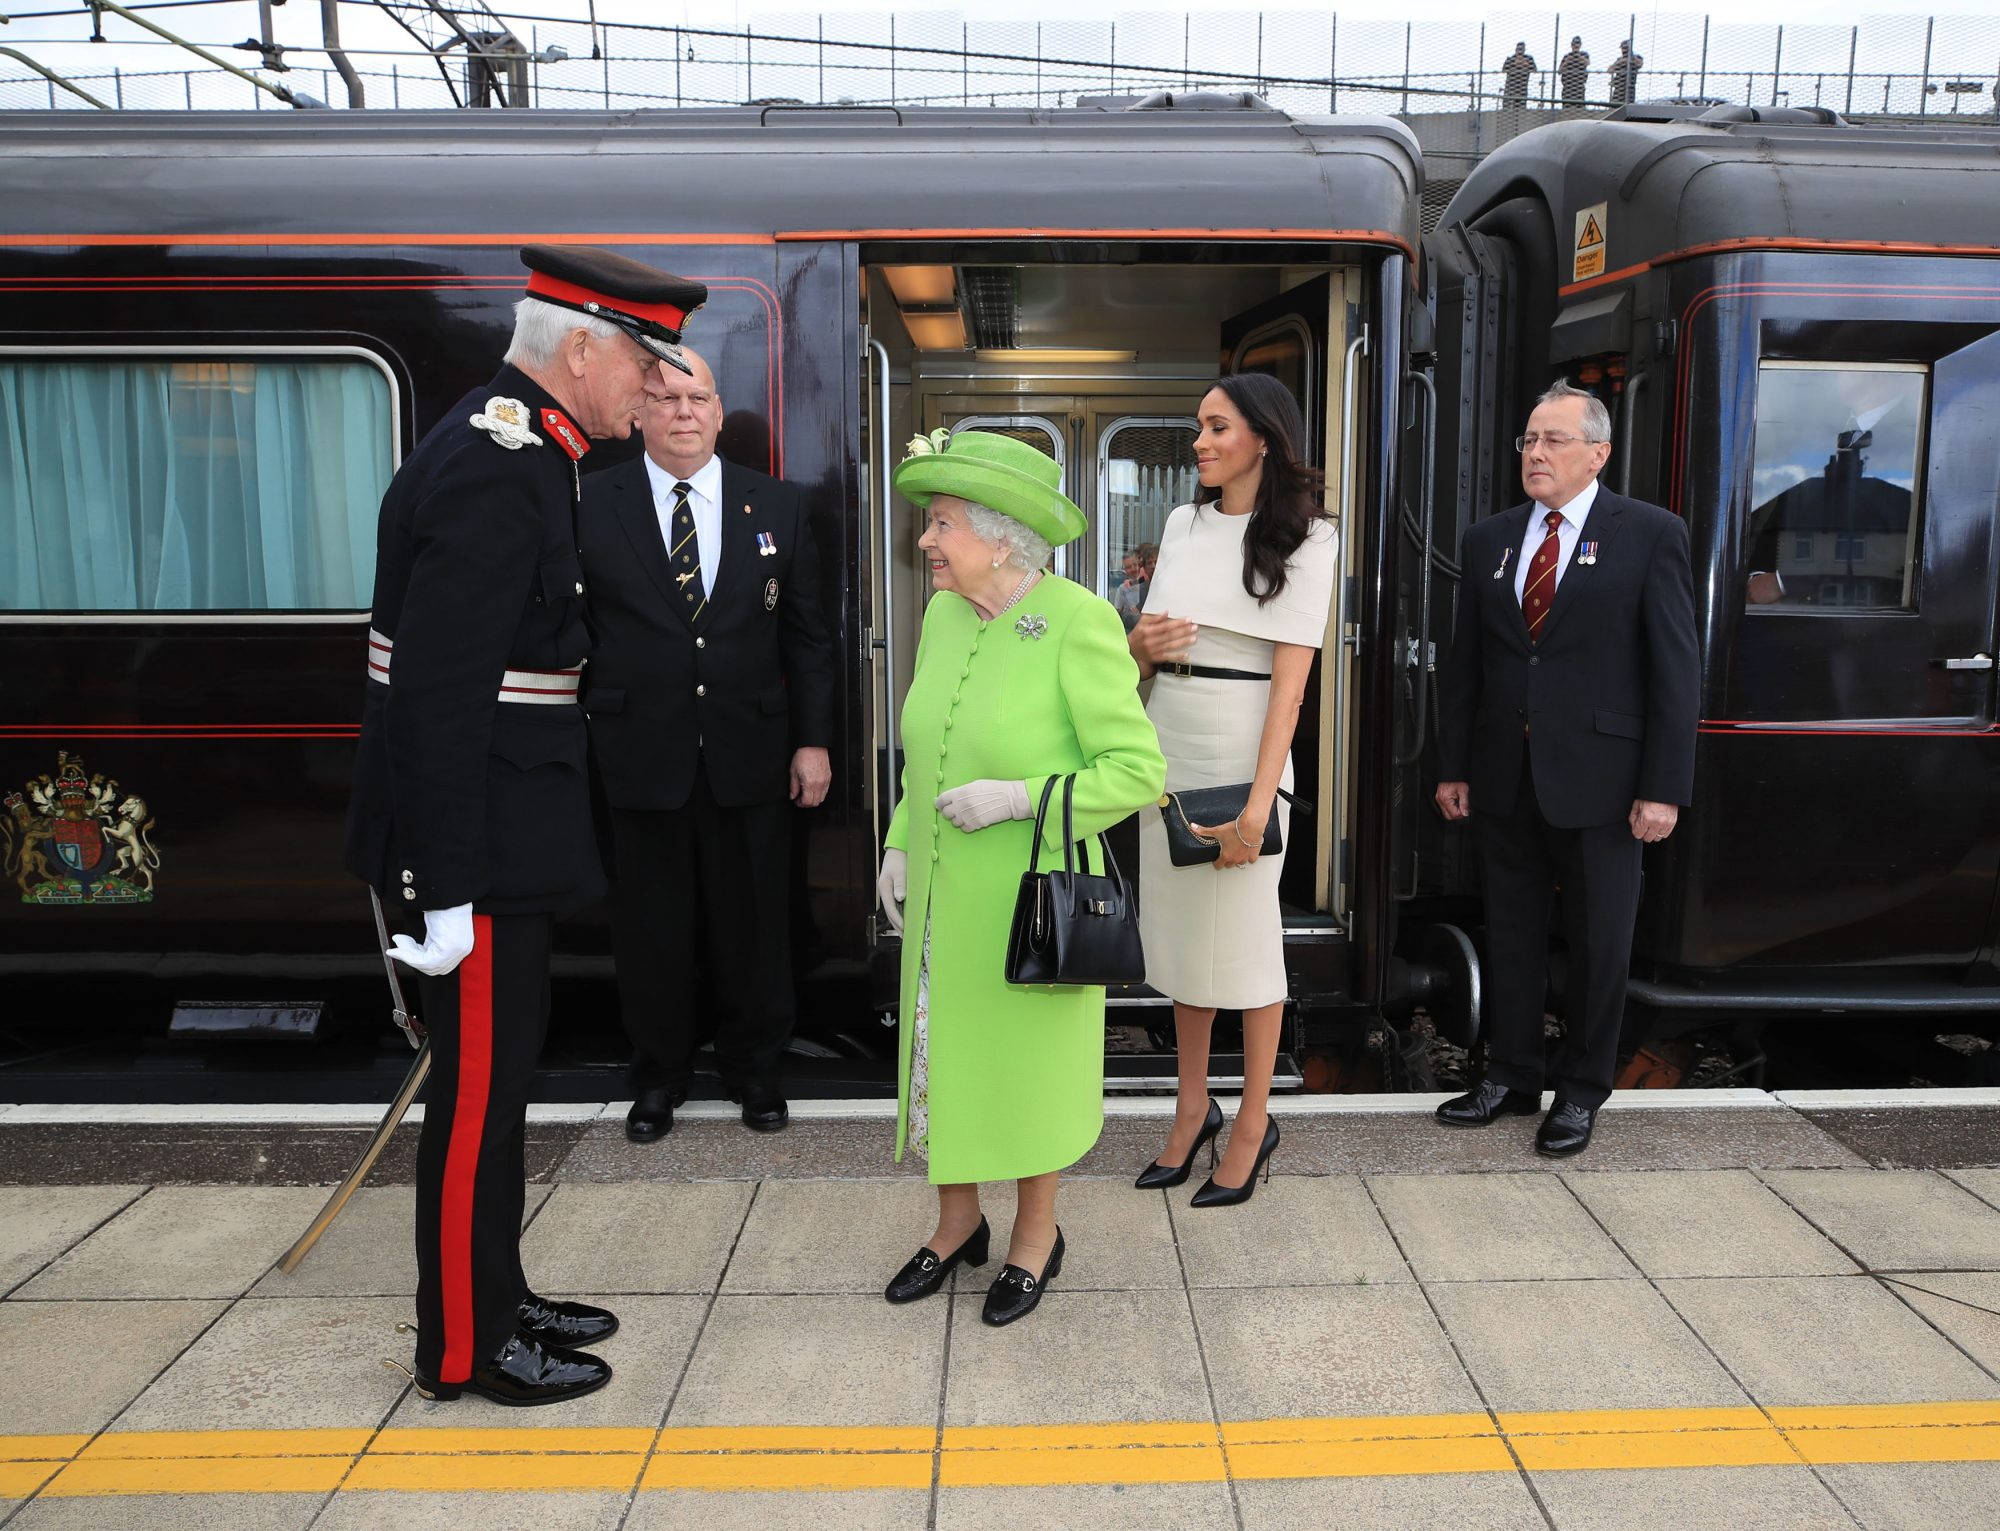 Meghan-Markle-and-queen-on-train.jpg